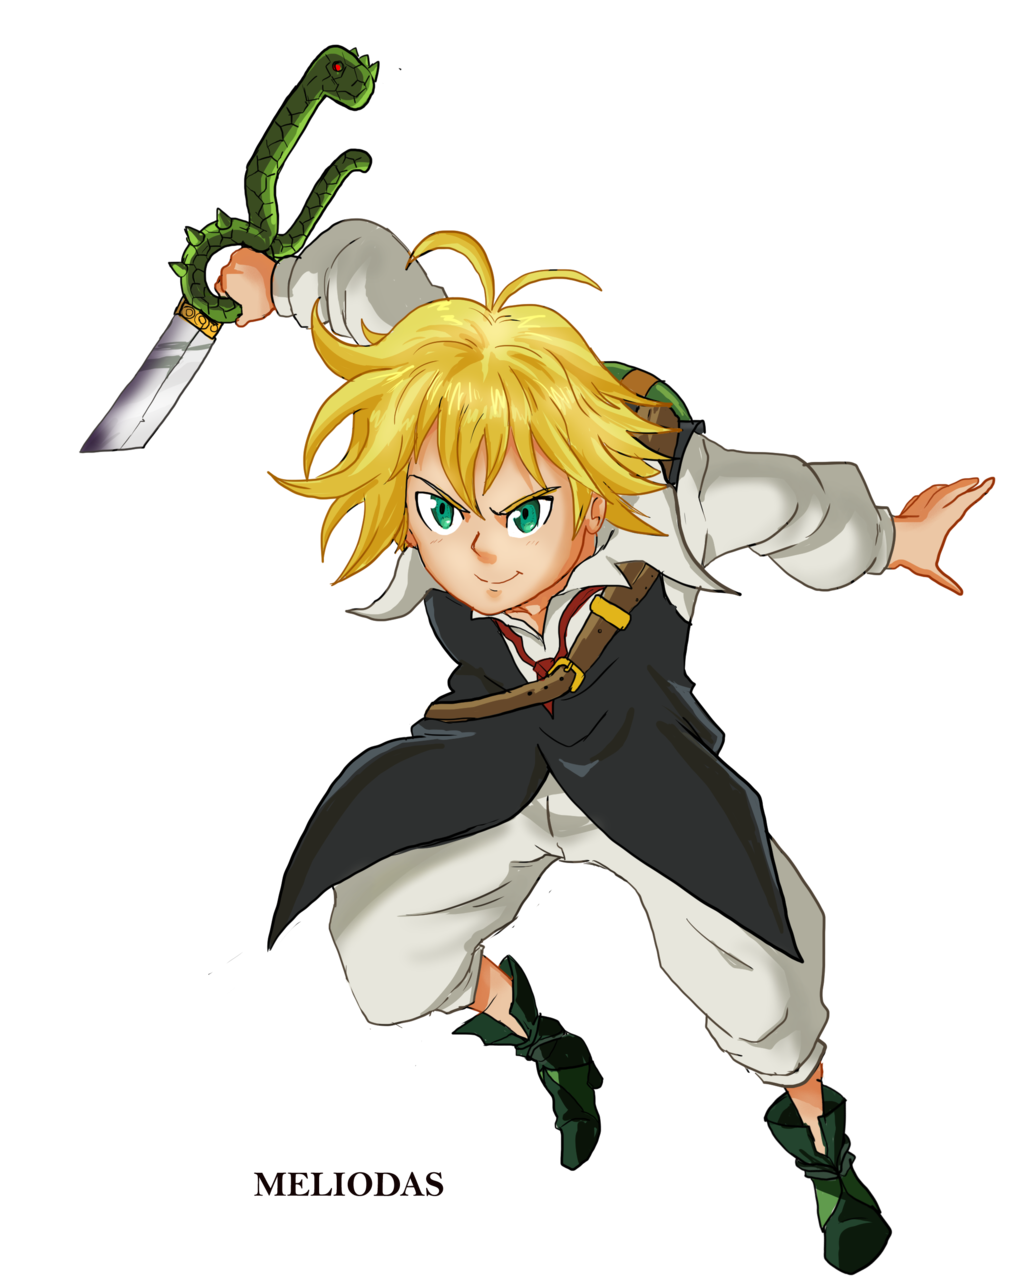 Seven Deadly Sins Png - IMG 3702.PNG - The Seven Deadly Sins Foto (40363490) - Fanpop